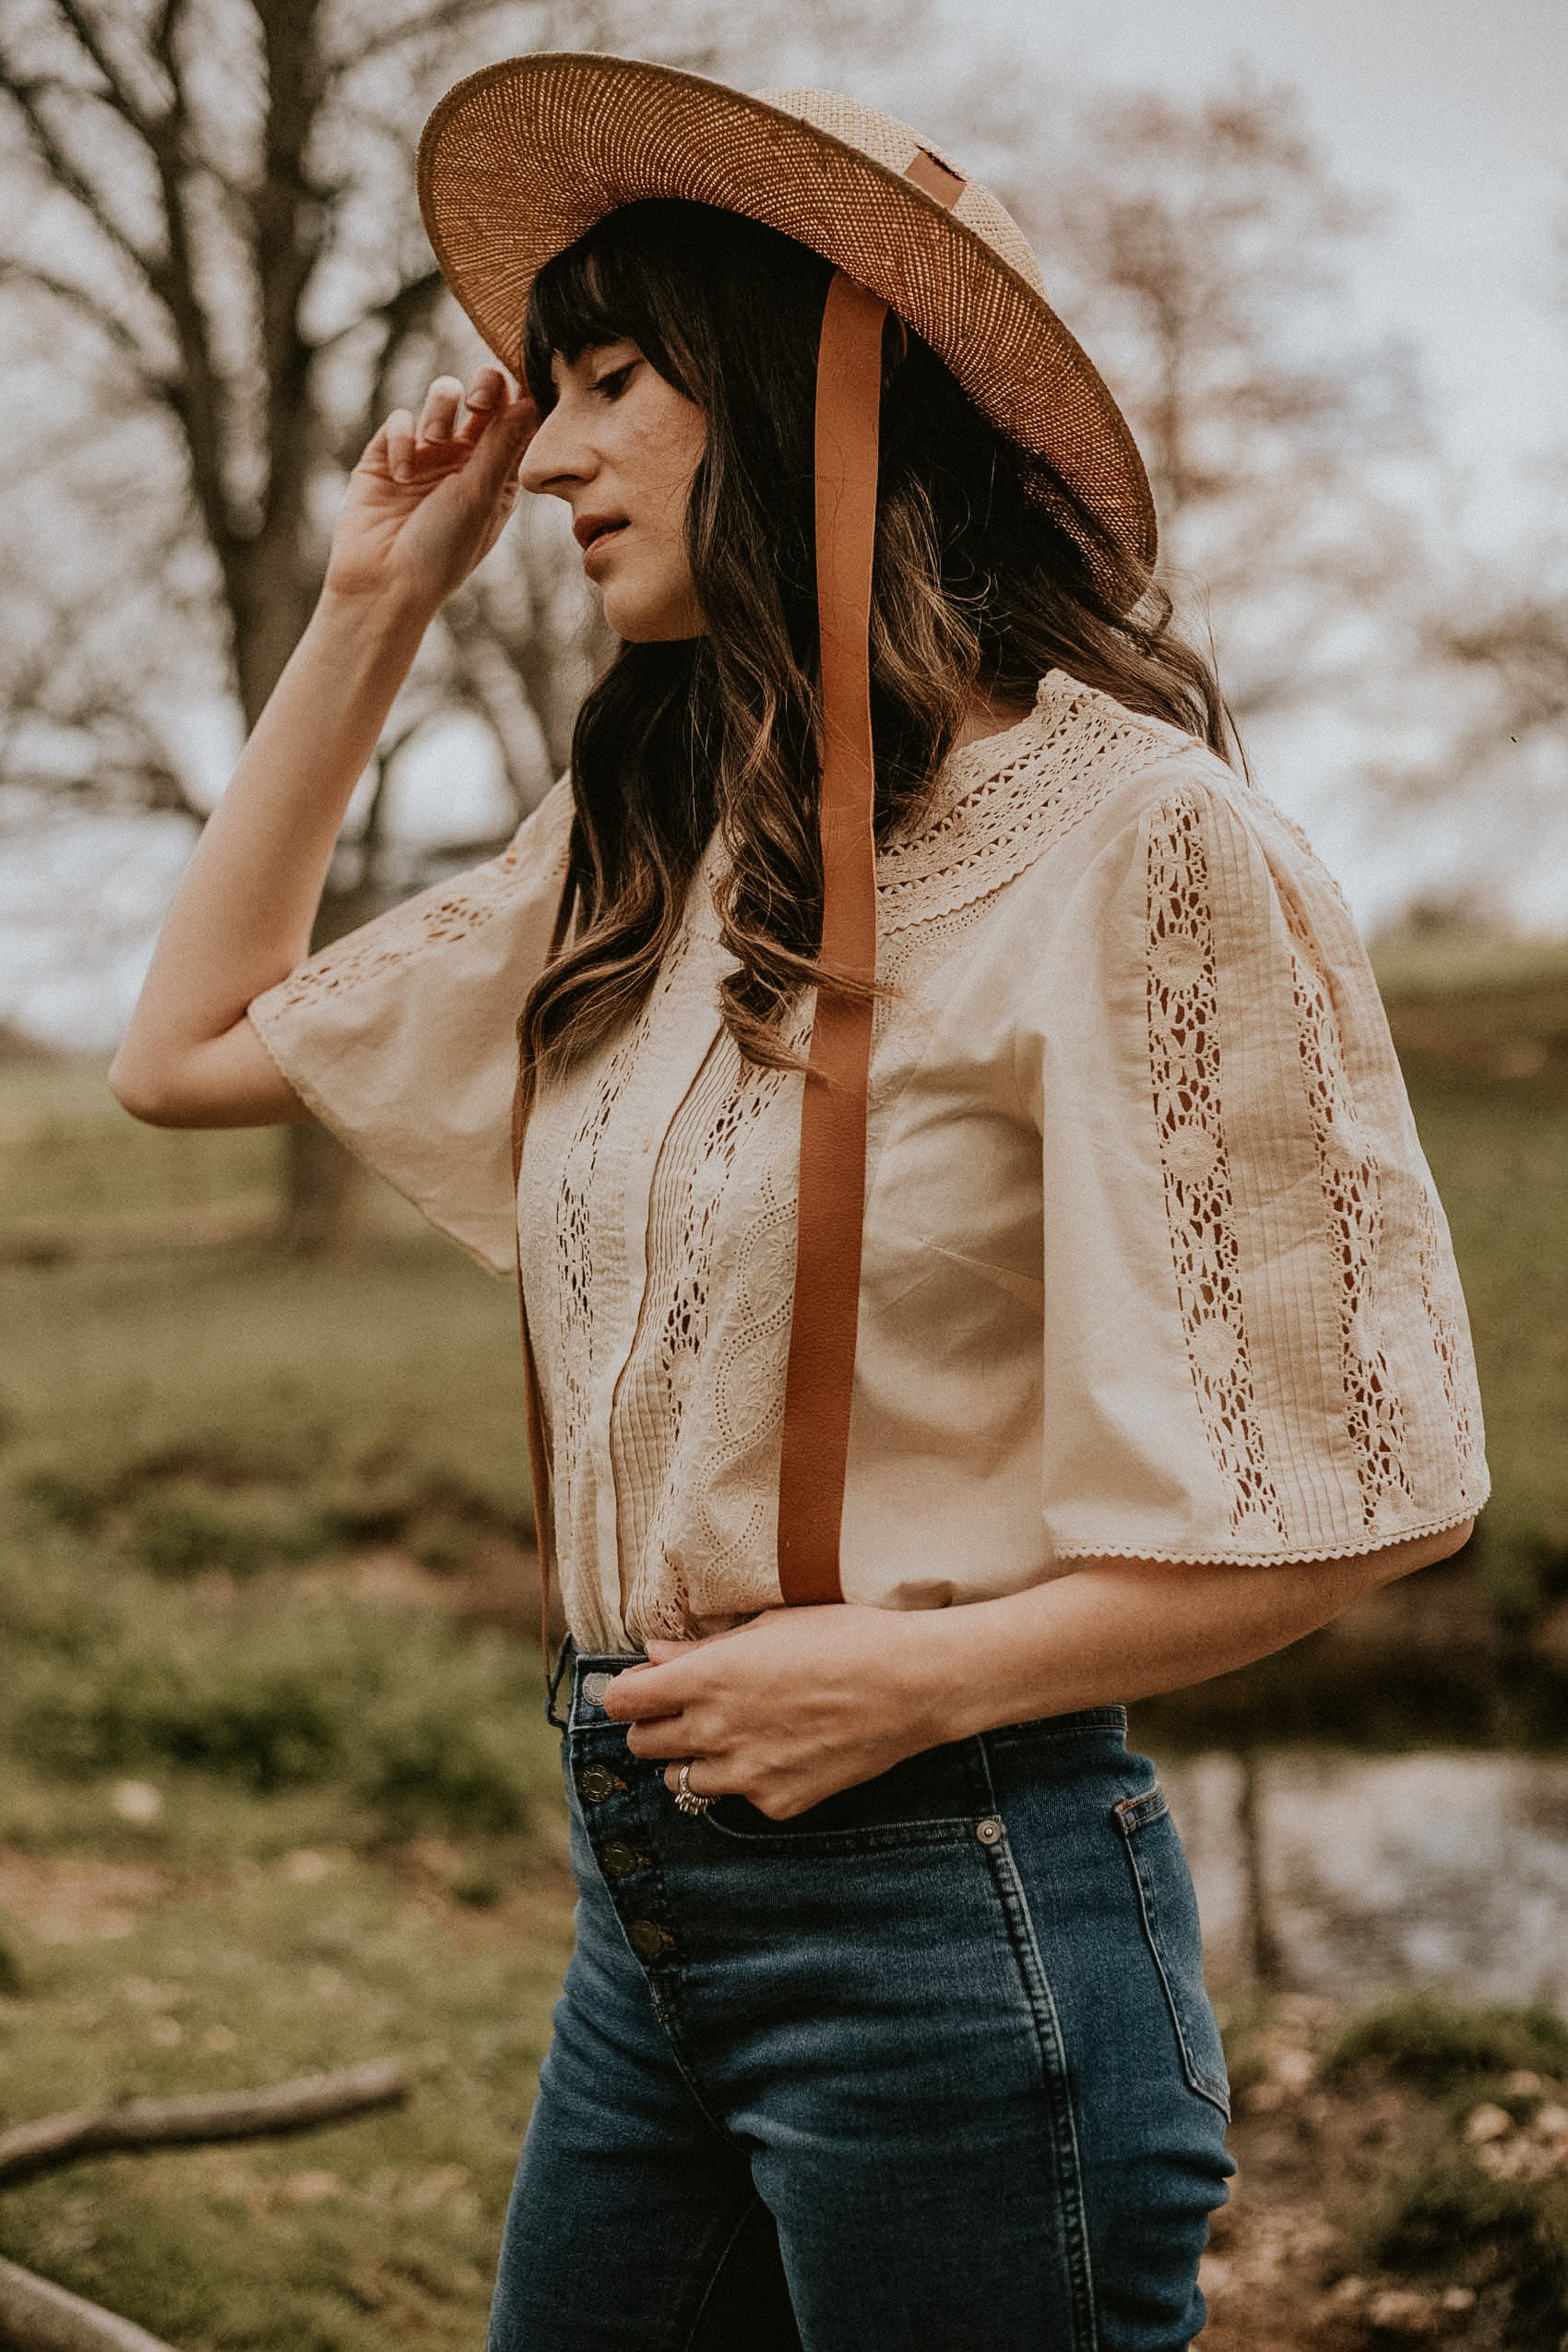 Sezane Embroidered Jane Blouse with Janessa Leone Straw Agnes hat with leather ties on woman in field